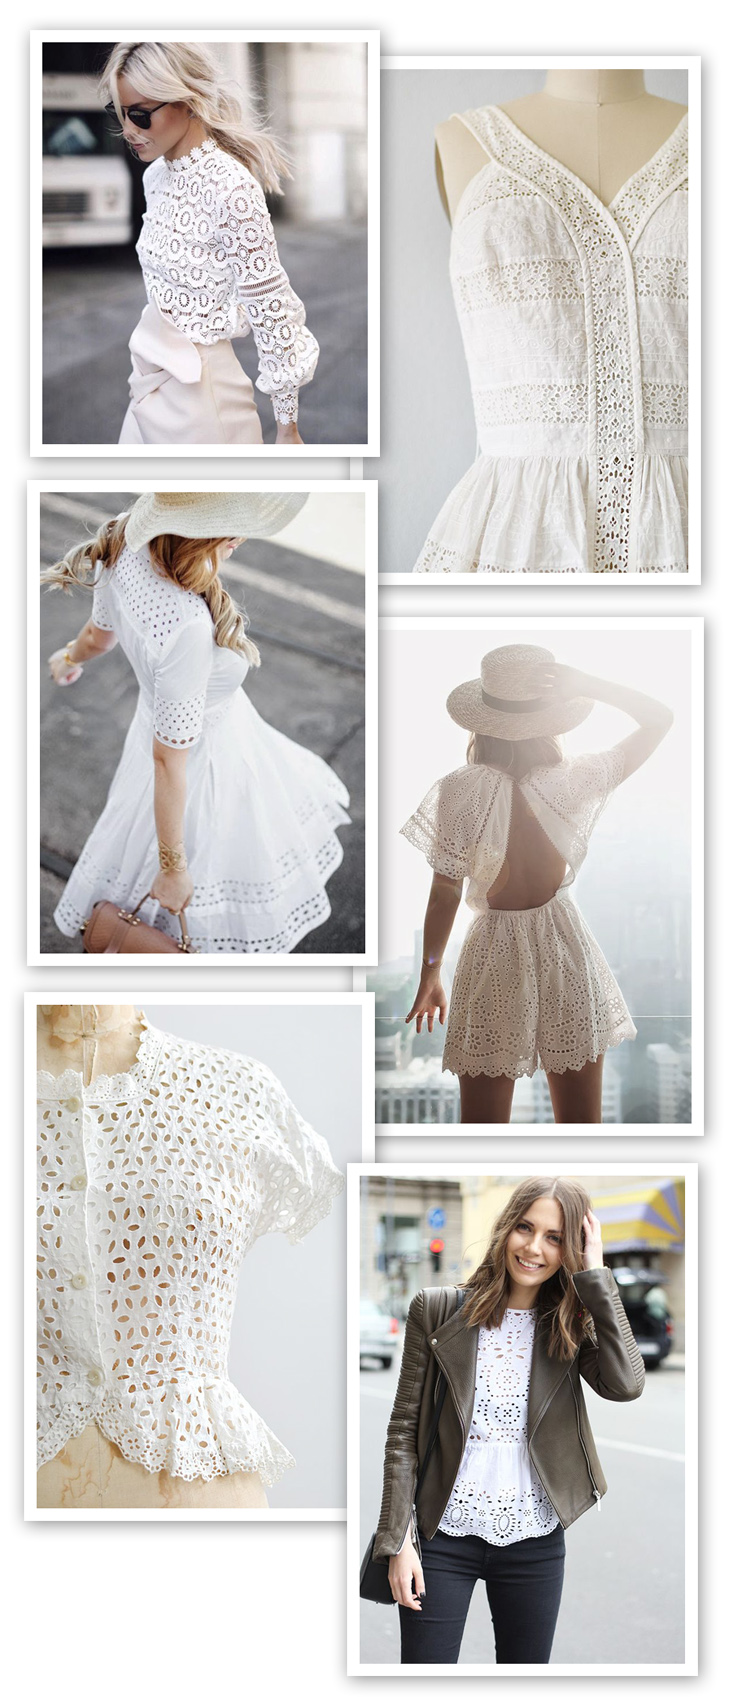 bdb9c4cb82b63 White Eyelet — Stars and Field - A Blog About the Everyday